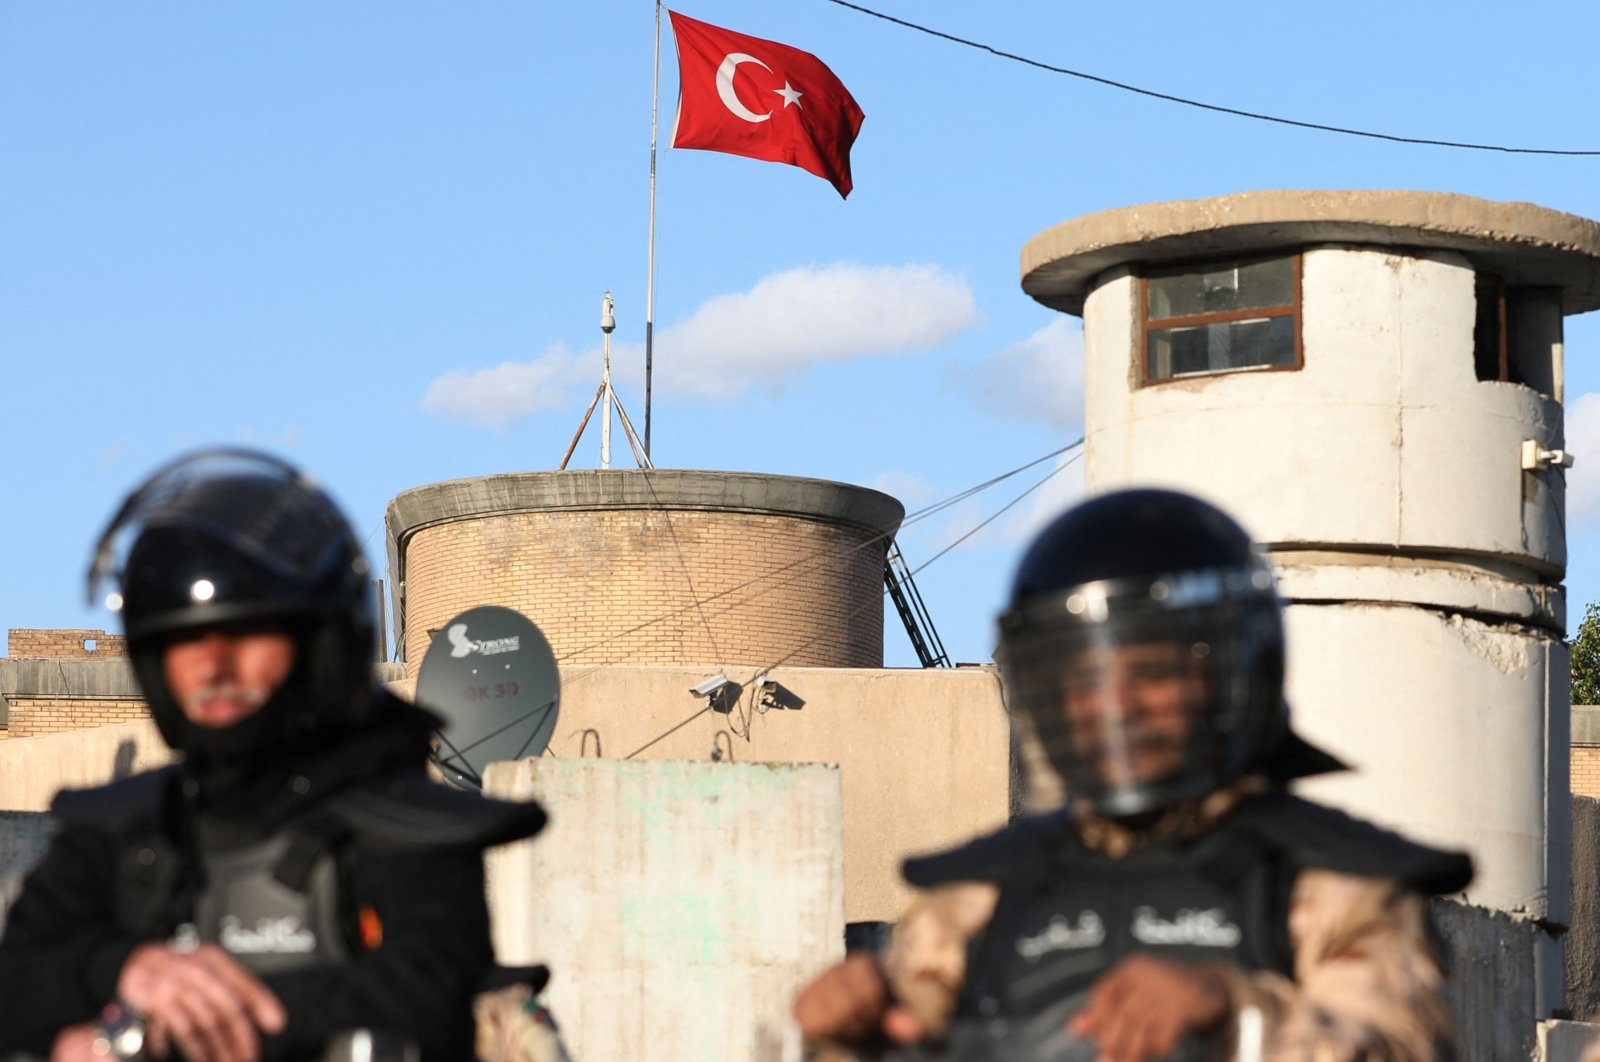 Iraqi riot police stand guard at the Turkish Embassy in Baghdad after the Iran-backed Asaib Ahl al-Haq paramilitary group recently said if Turkey expanded its military operations into the strategic northwestern enclave of Sinjar, it would fight back, Feb. 18, 2021. (AFP Photo)